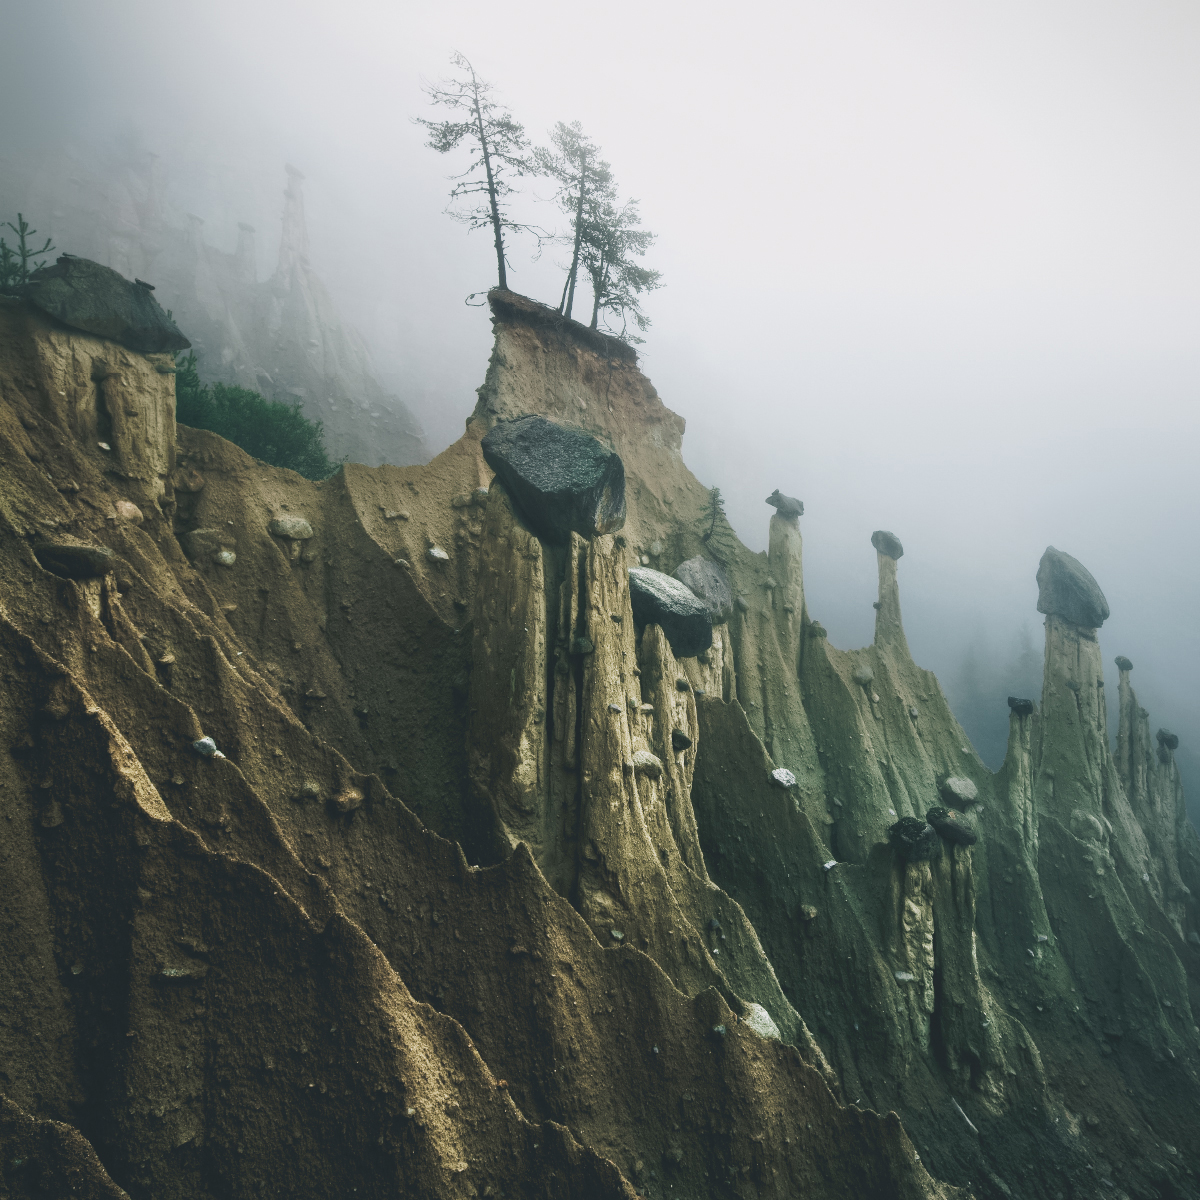 Otherworldly 'Earth Pyramids' Captured in the Foggy Early Morning Light by Photographer Kilian Schonberger (7 pics)